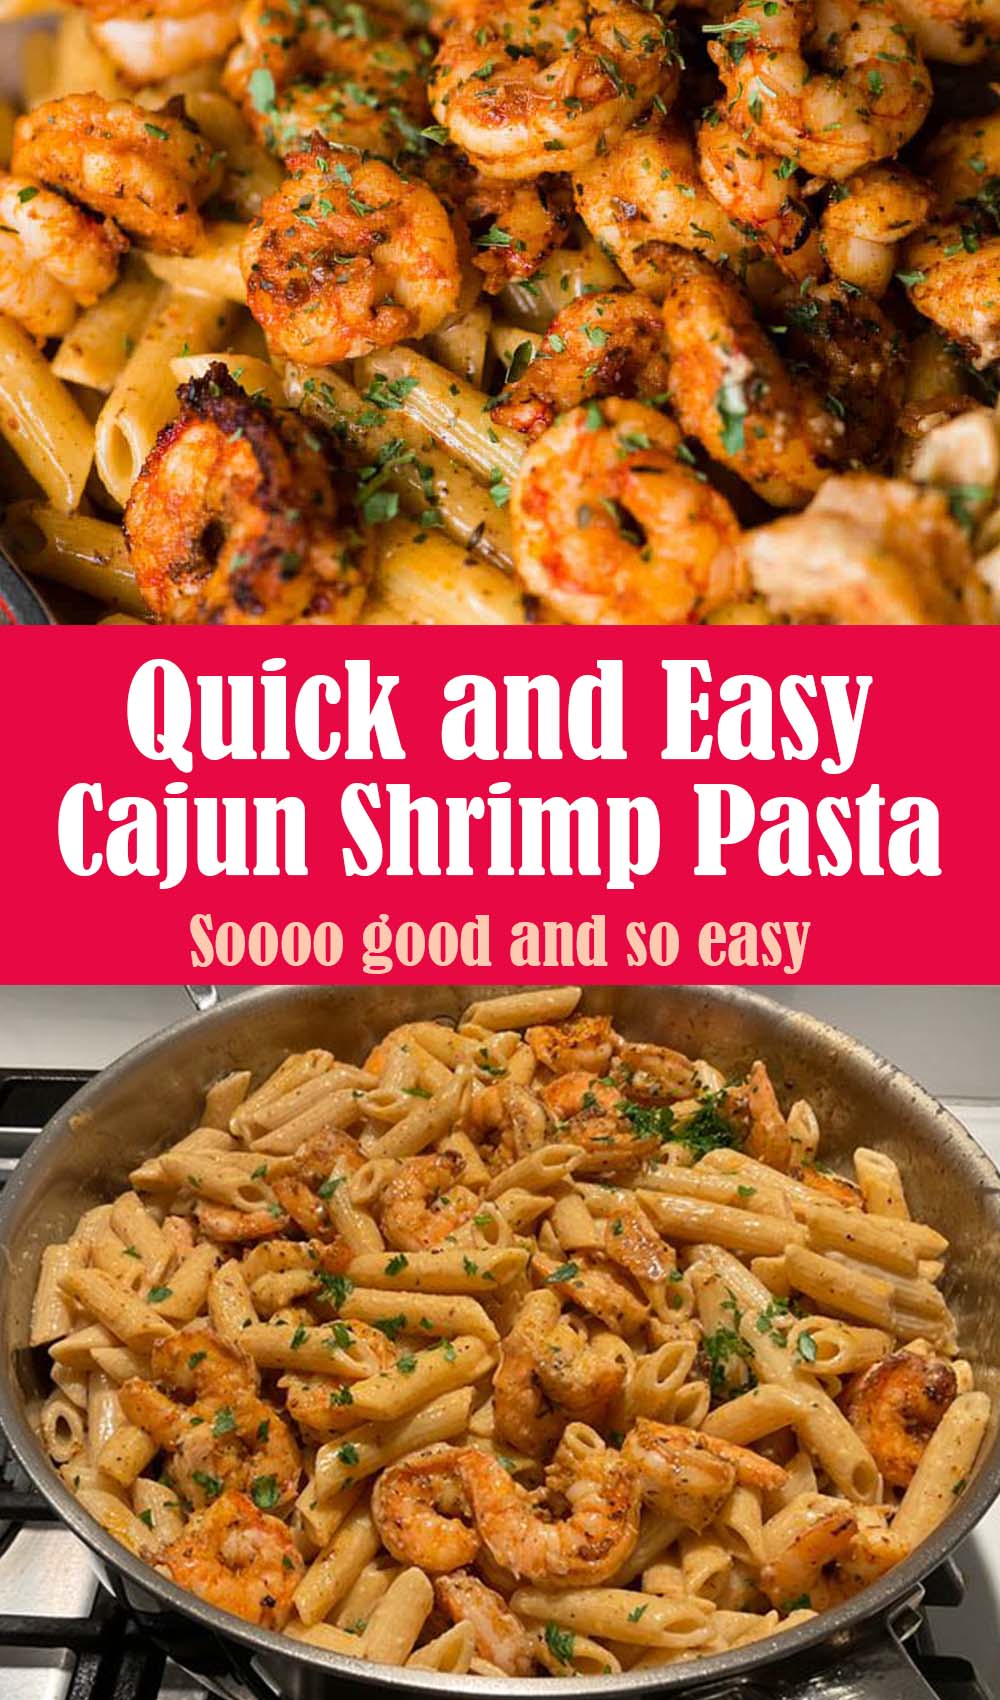 Quick and Easy Cajun Shrimp Pasta Recipe